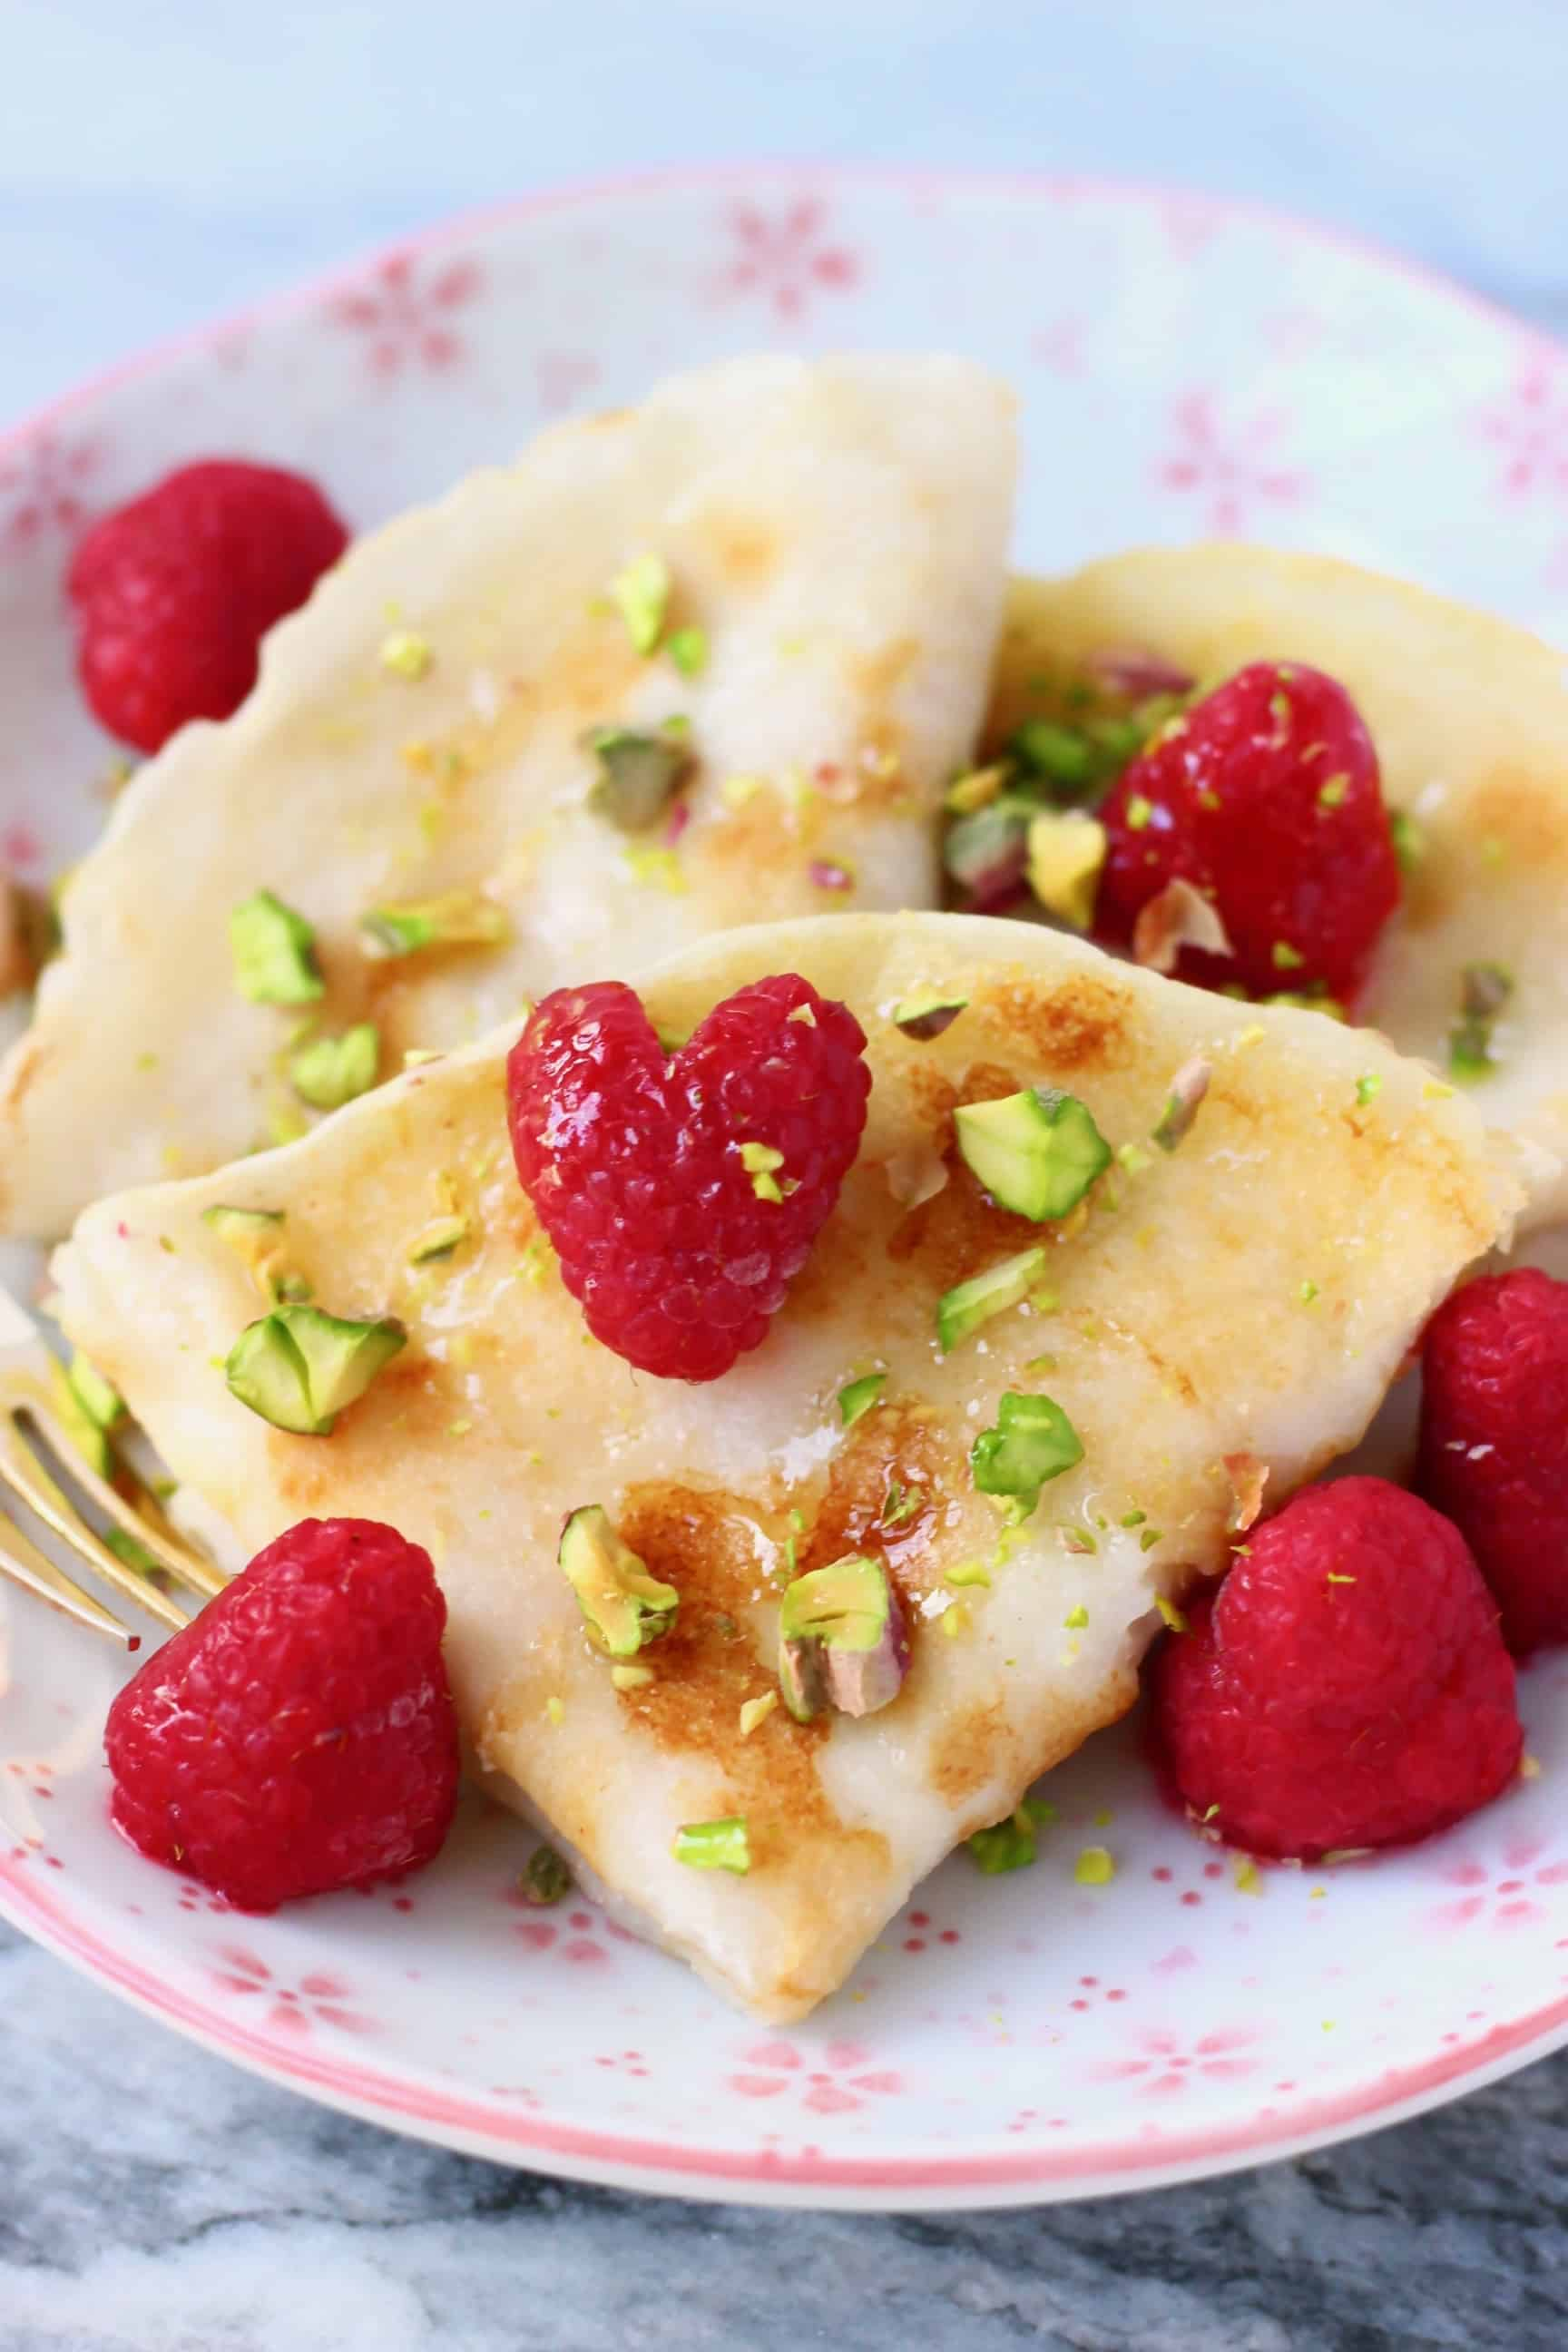 Three folded crepes on a white plate with pink flowers decorated with fresh raspberries and chopped pistachios with a gold fork against a marble background